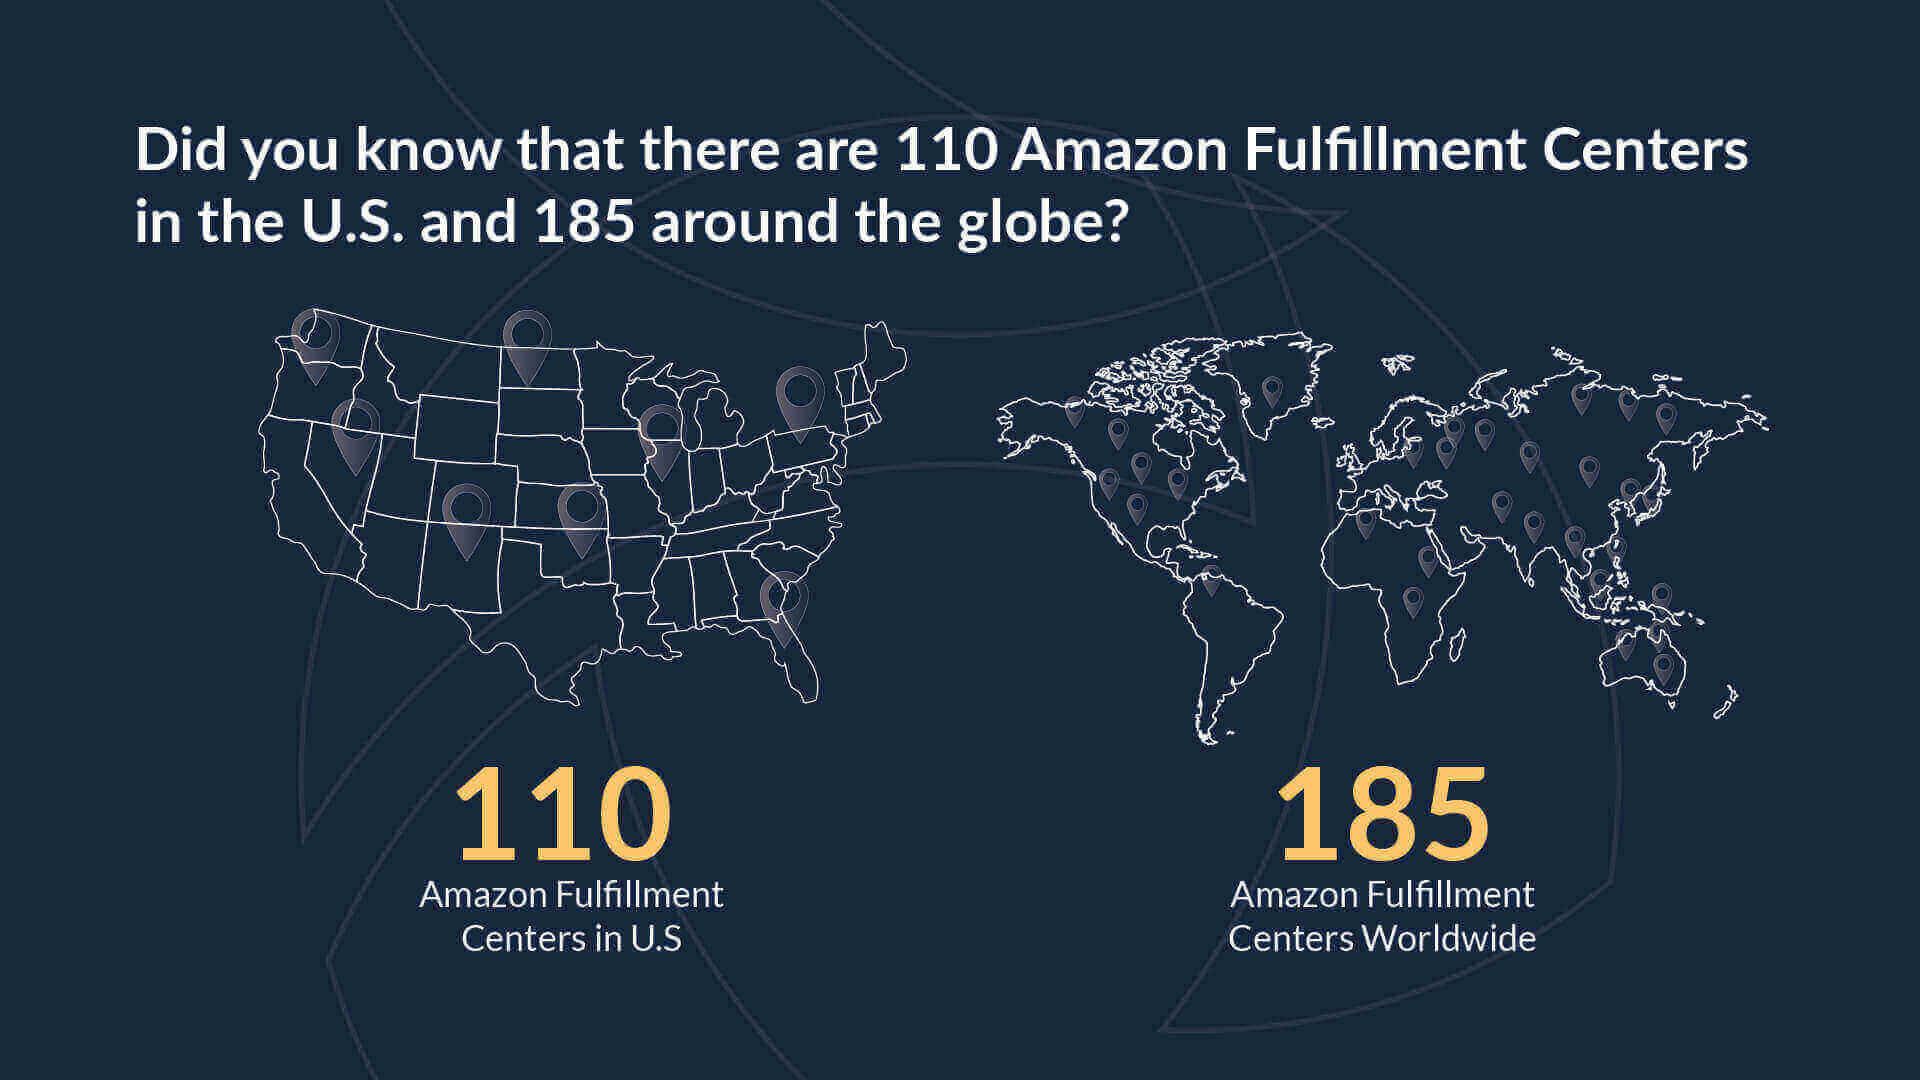 """Map of the world with pin points across the globe. Caption: """"Did you know that there are 110 Amazon Fulfillment Centers in the U.S. and 185 across the globe?"""""""